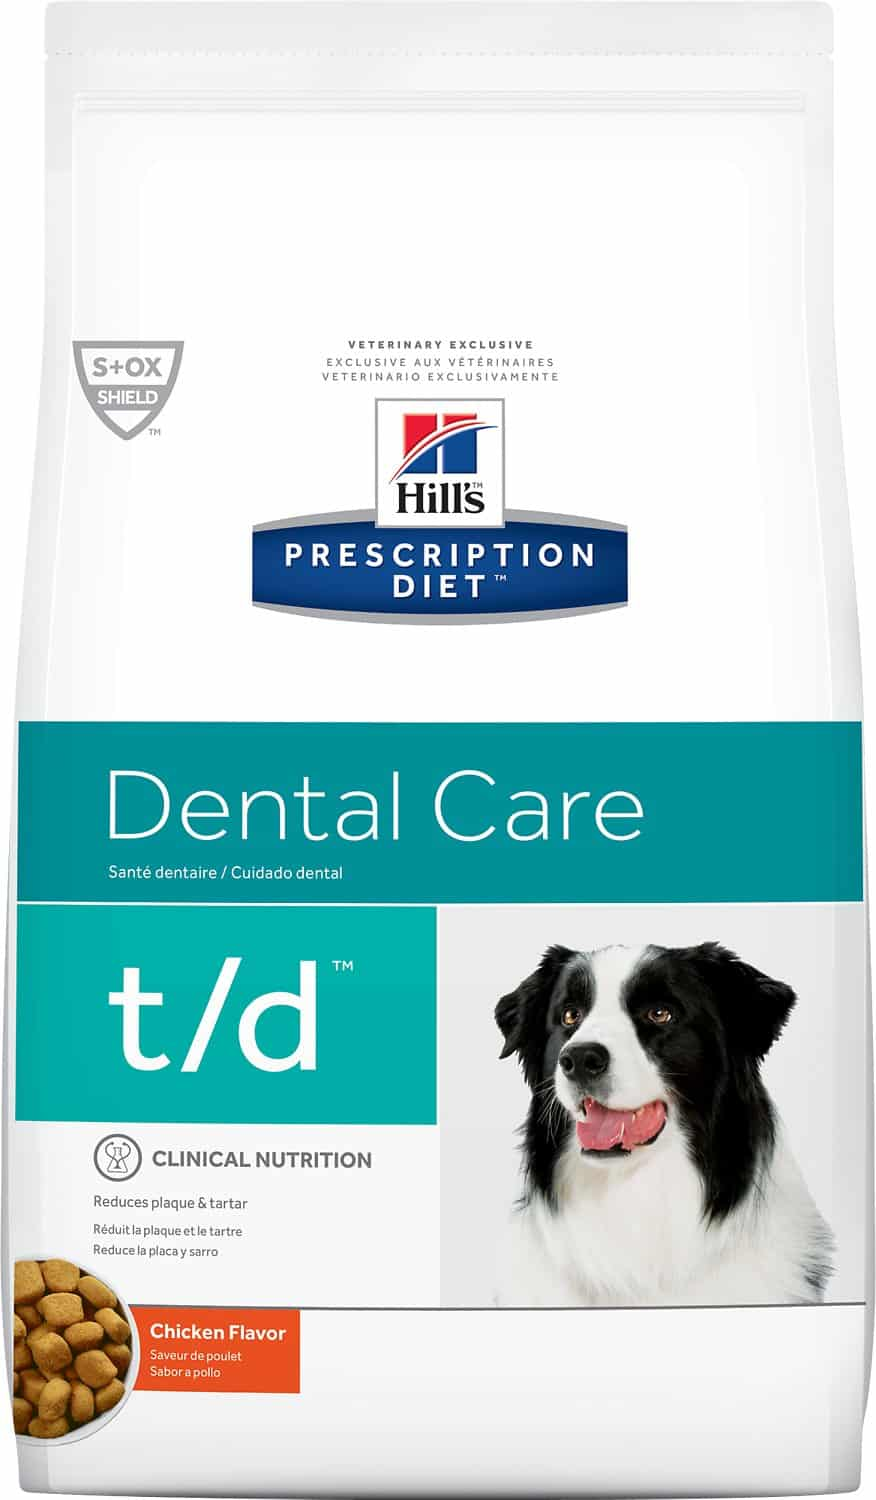 What's the Best Dog Food for Bad Breath? What to Look For When Choosing a Dental Health Food for Your Dog? 16